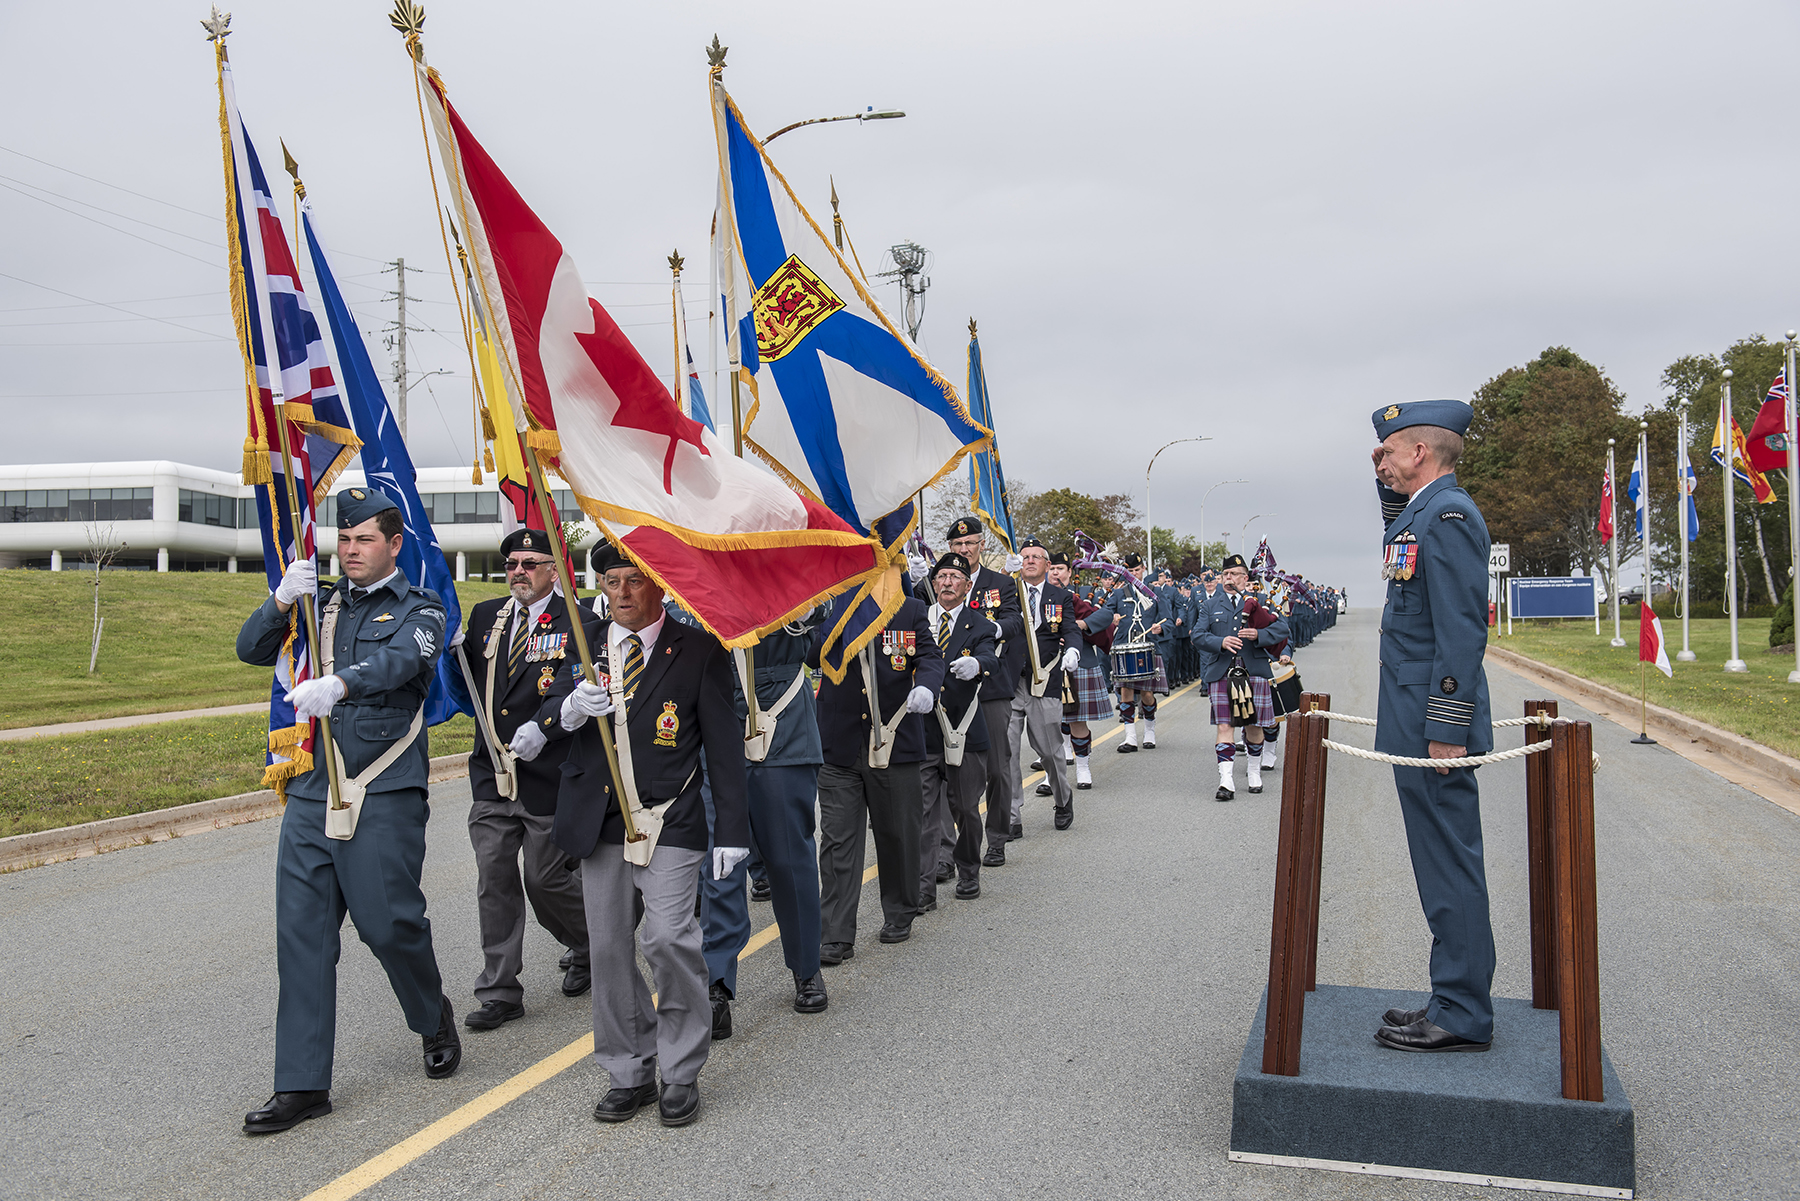 Wing commander Colonel Sid Connor (right) salutes the Colour Party during a parade and ceremony commemorating the Battle of Britain held at 12 Wing Shearwater, Nova Scotia, on September 17, 2017. PHOTO: Corporal Anthony Laviolette, SW04-2017-0250-033